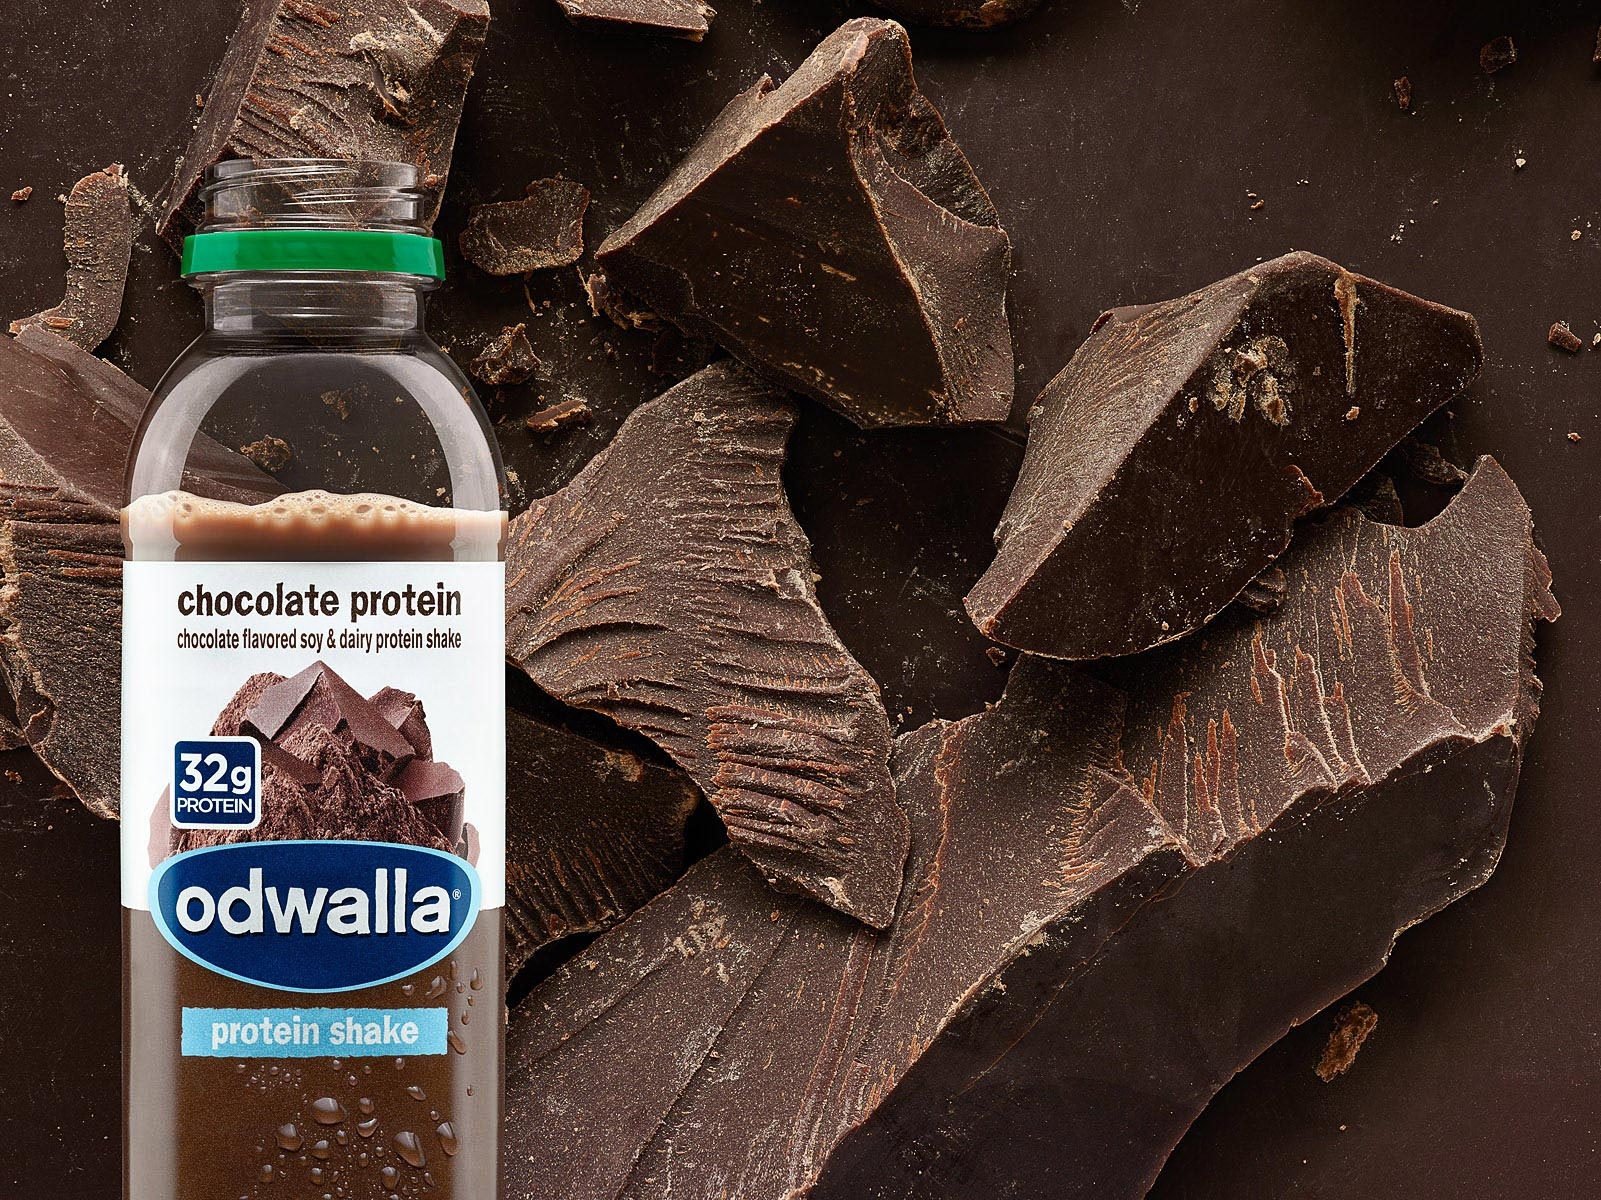 0025_Odwalla_15oz_chocolate_02_Droplets-small-39